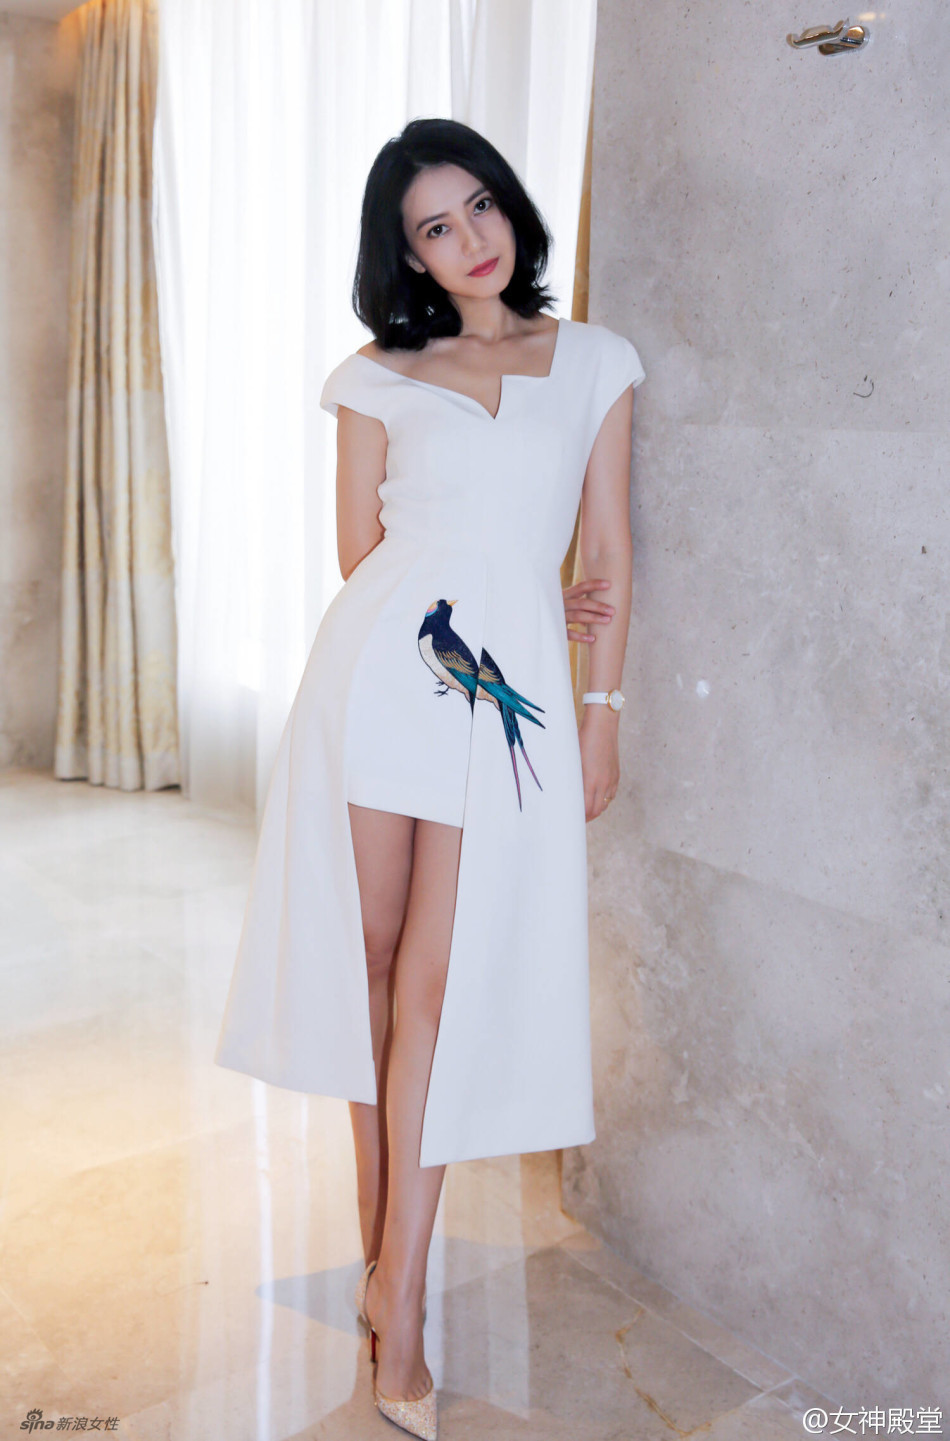 yuanyuan gao rate my professoryuanyuan gao instagram, yuanyuan gao rate my professor, yuanyuan gao, yuanyuan gao feet, gao yuanyuan and mark chao, gao yuanyuan pregnant, gao yuanyuan and mark chao love story, gao yuanyuan weibo, gao yuanyuan wedding photo, gao yuanyuan age, gao yuanyuan movies, gao yuanyuan and mark chao movie, gao yuanyuan and mark chao baby, gao yuanyuan film, gao yuanyuan mark chao wedding, gao yuanyuan net worth, gao yuanyuan ig, gao yuanyuan wiki, gao yuanyuan dramawiki, gao yuanyuan baby